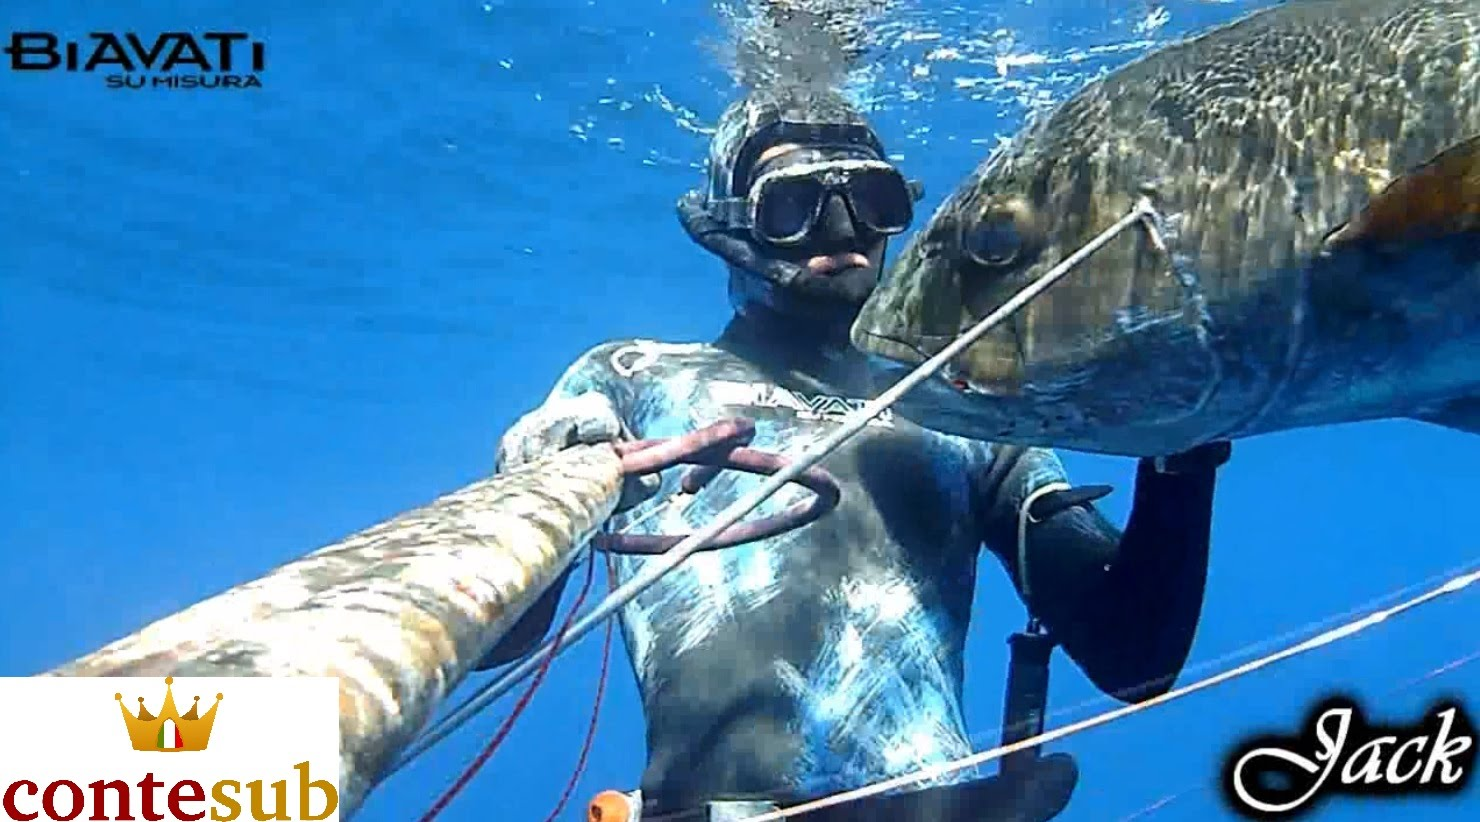 Pescasub by Jack – The best of Sardinia Spearfishing 2014